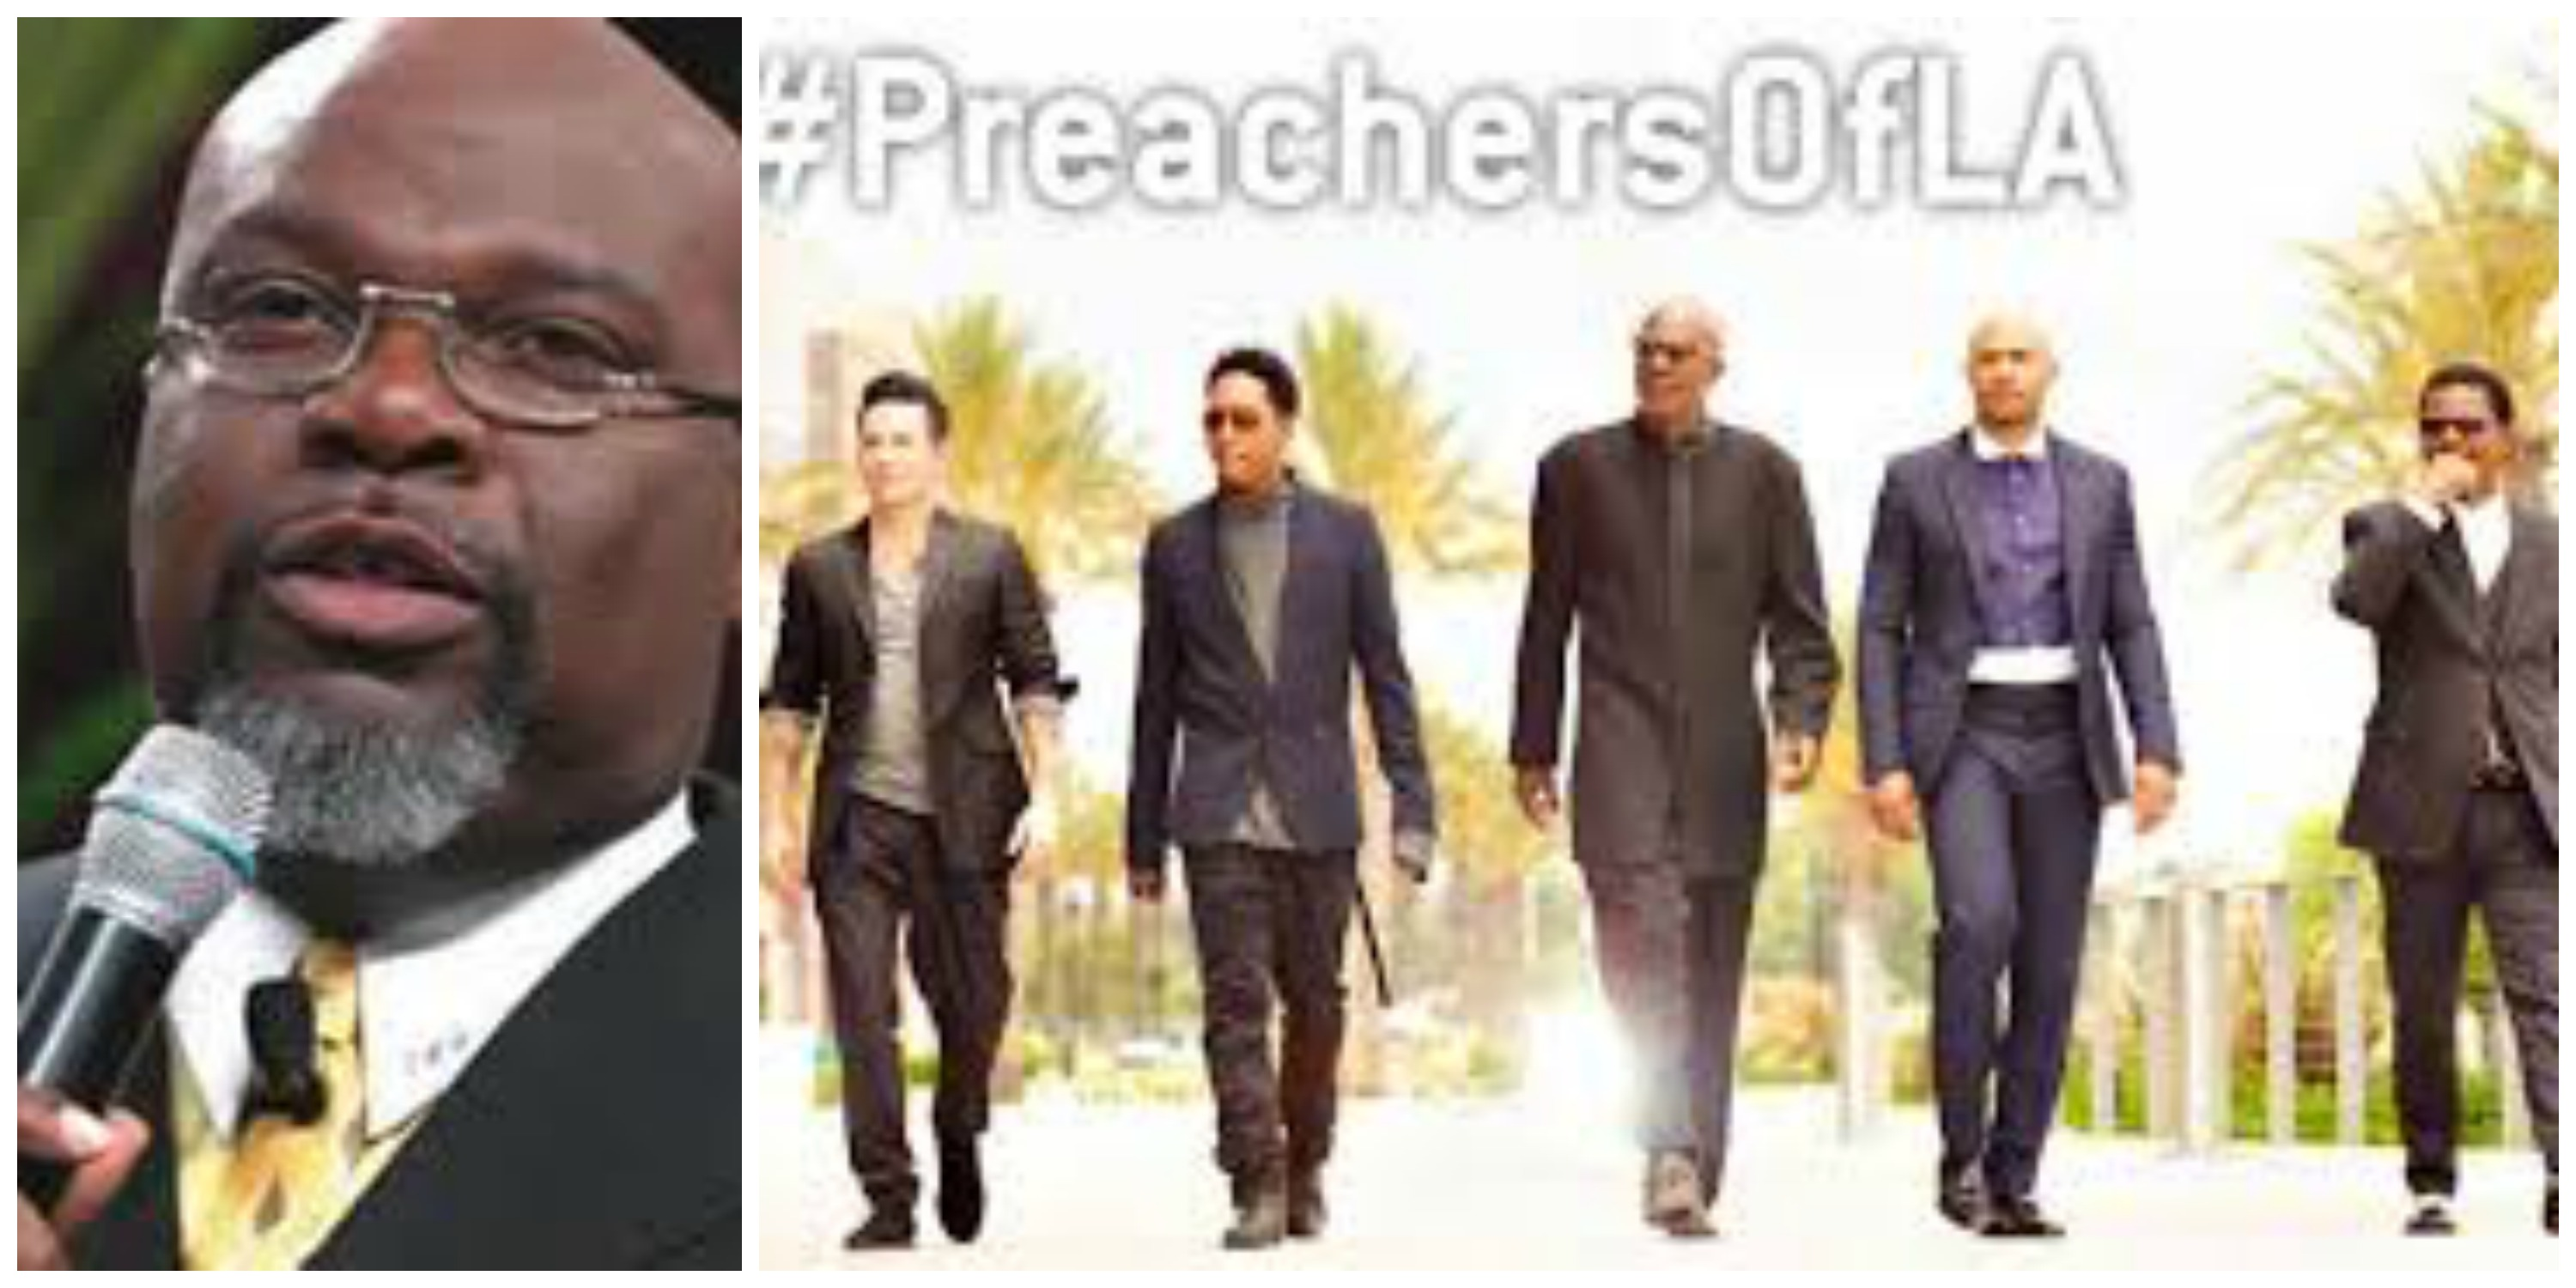 bishop-t.d.-jakes-preachers-of-la